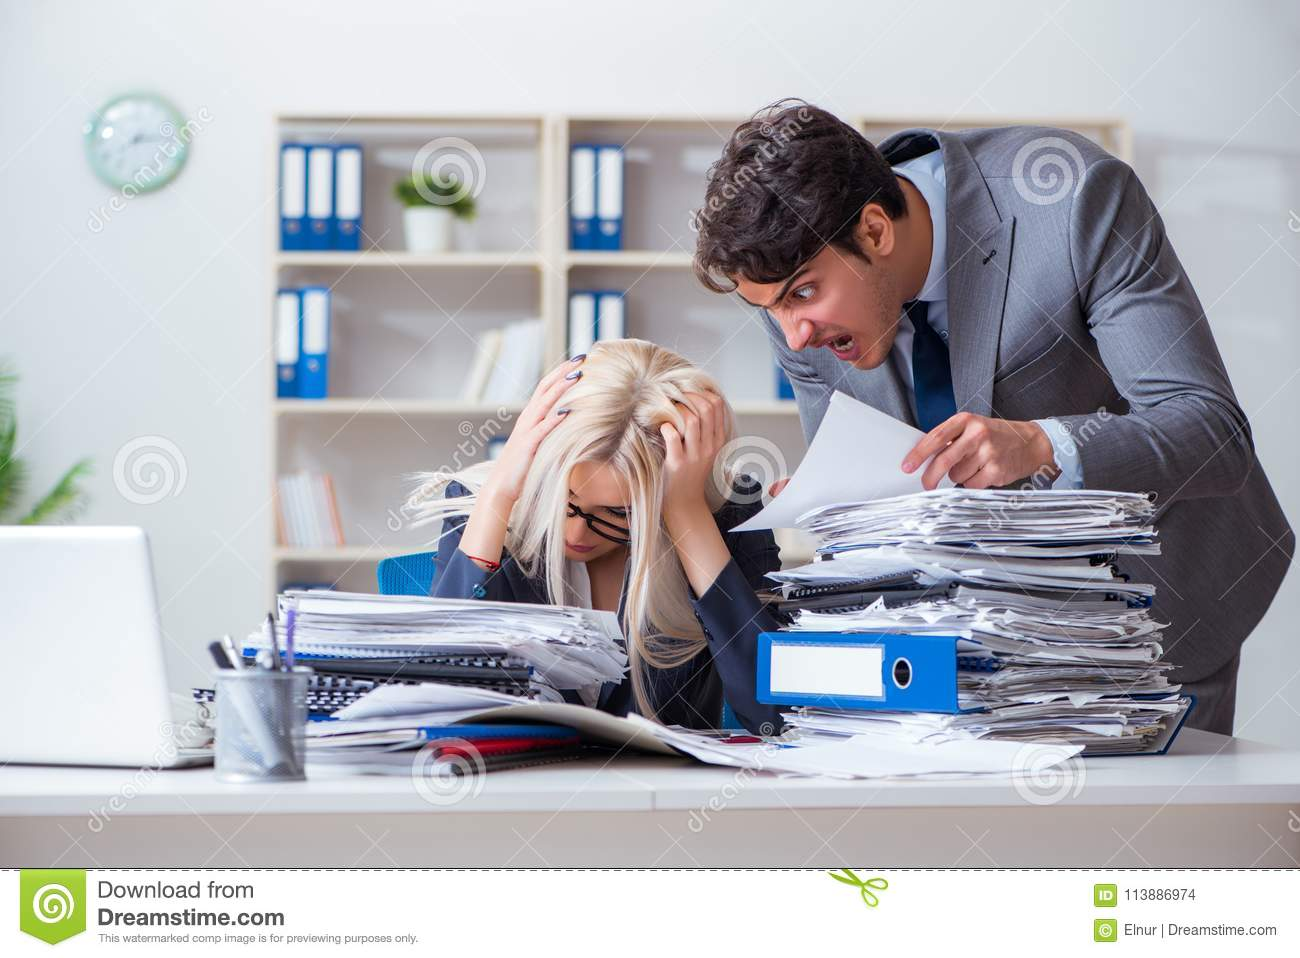 The angry irate boss yelling and shouting at his secretary employee